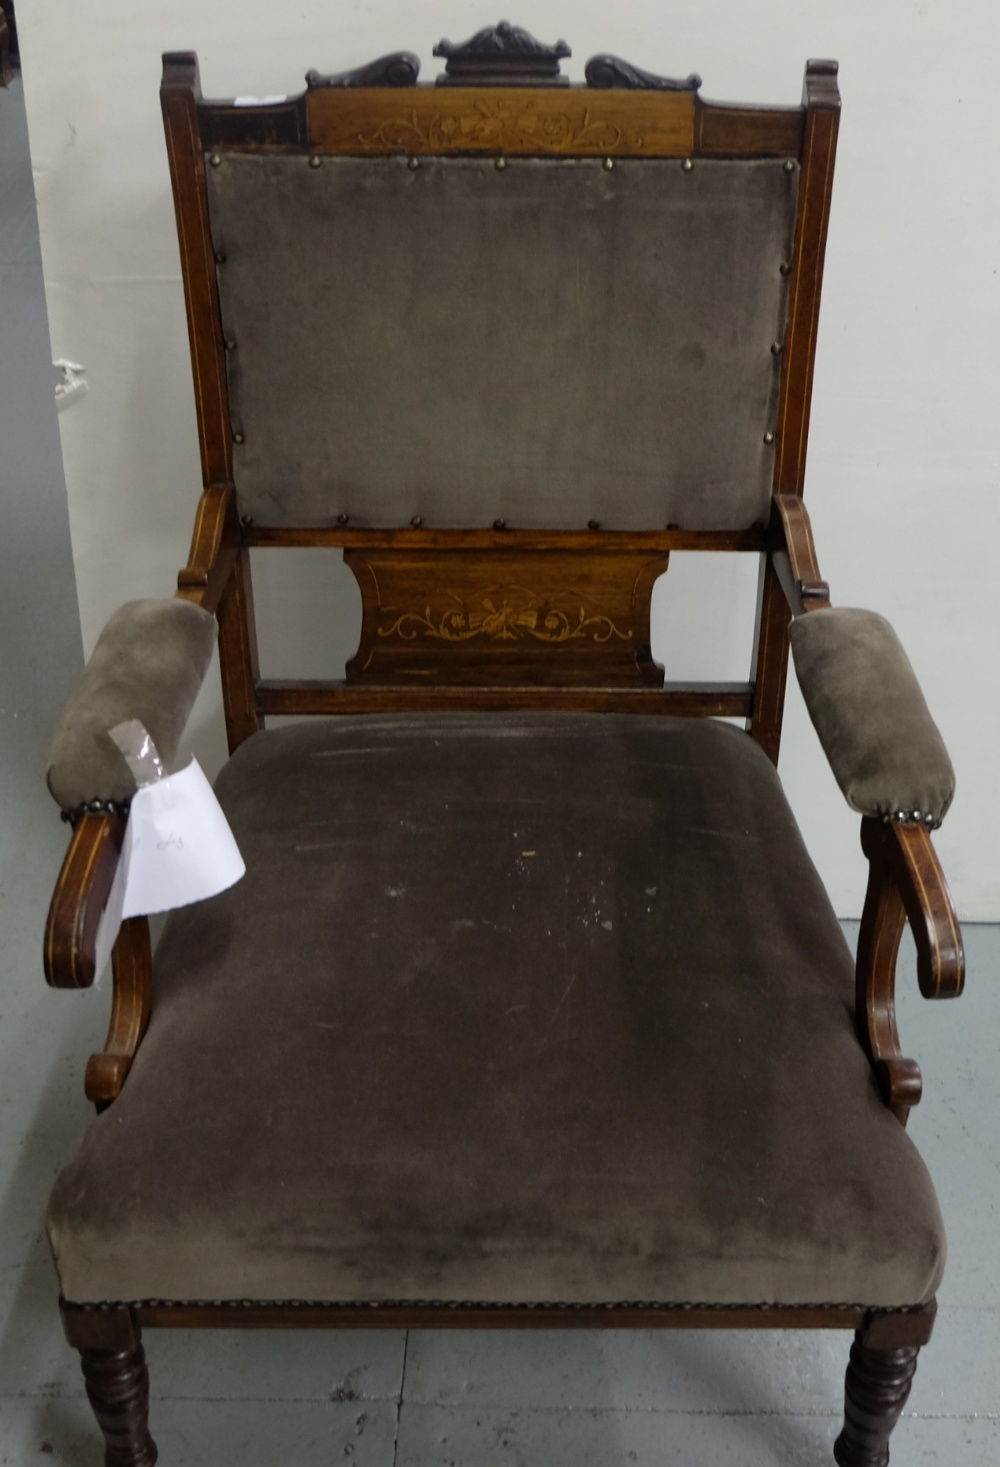 Lot 25 - Edwardian Inlaid Armchair (damage to right leg), grey fabric covered padded back and seat